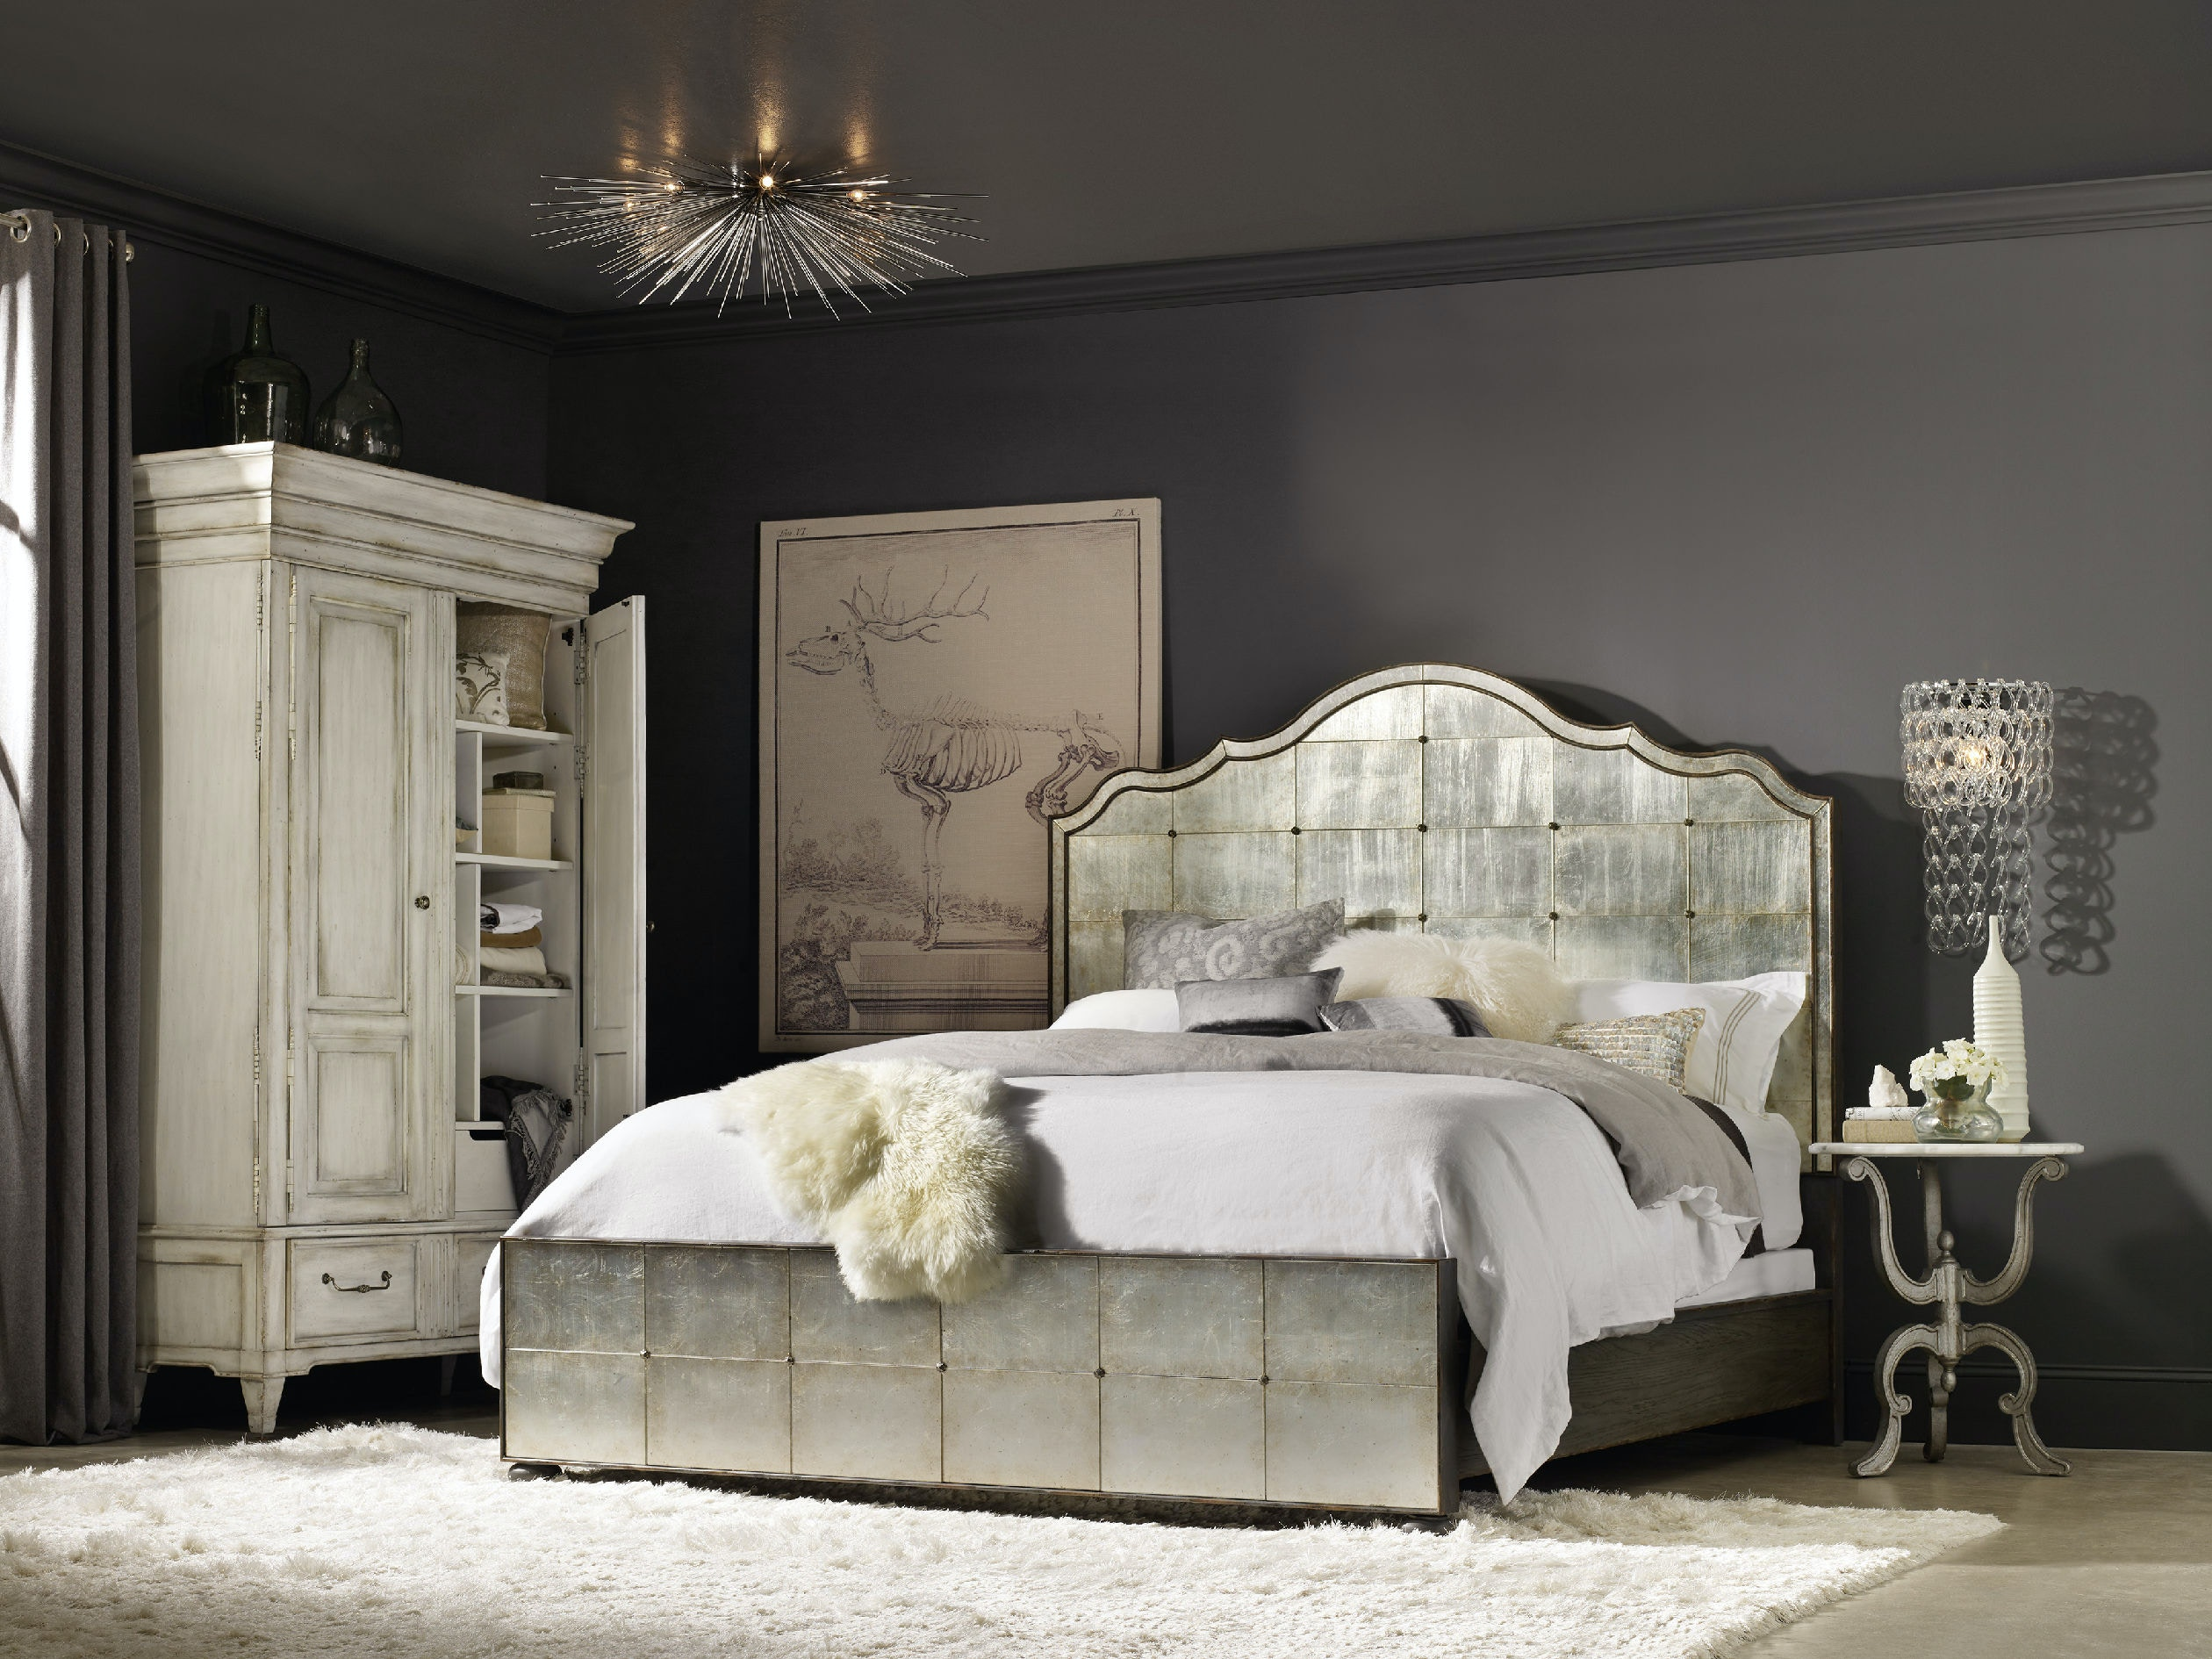 Incroyable Hooker Furniture Arabella King Mirrored Panel Bed 1610 90166 EGLO